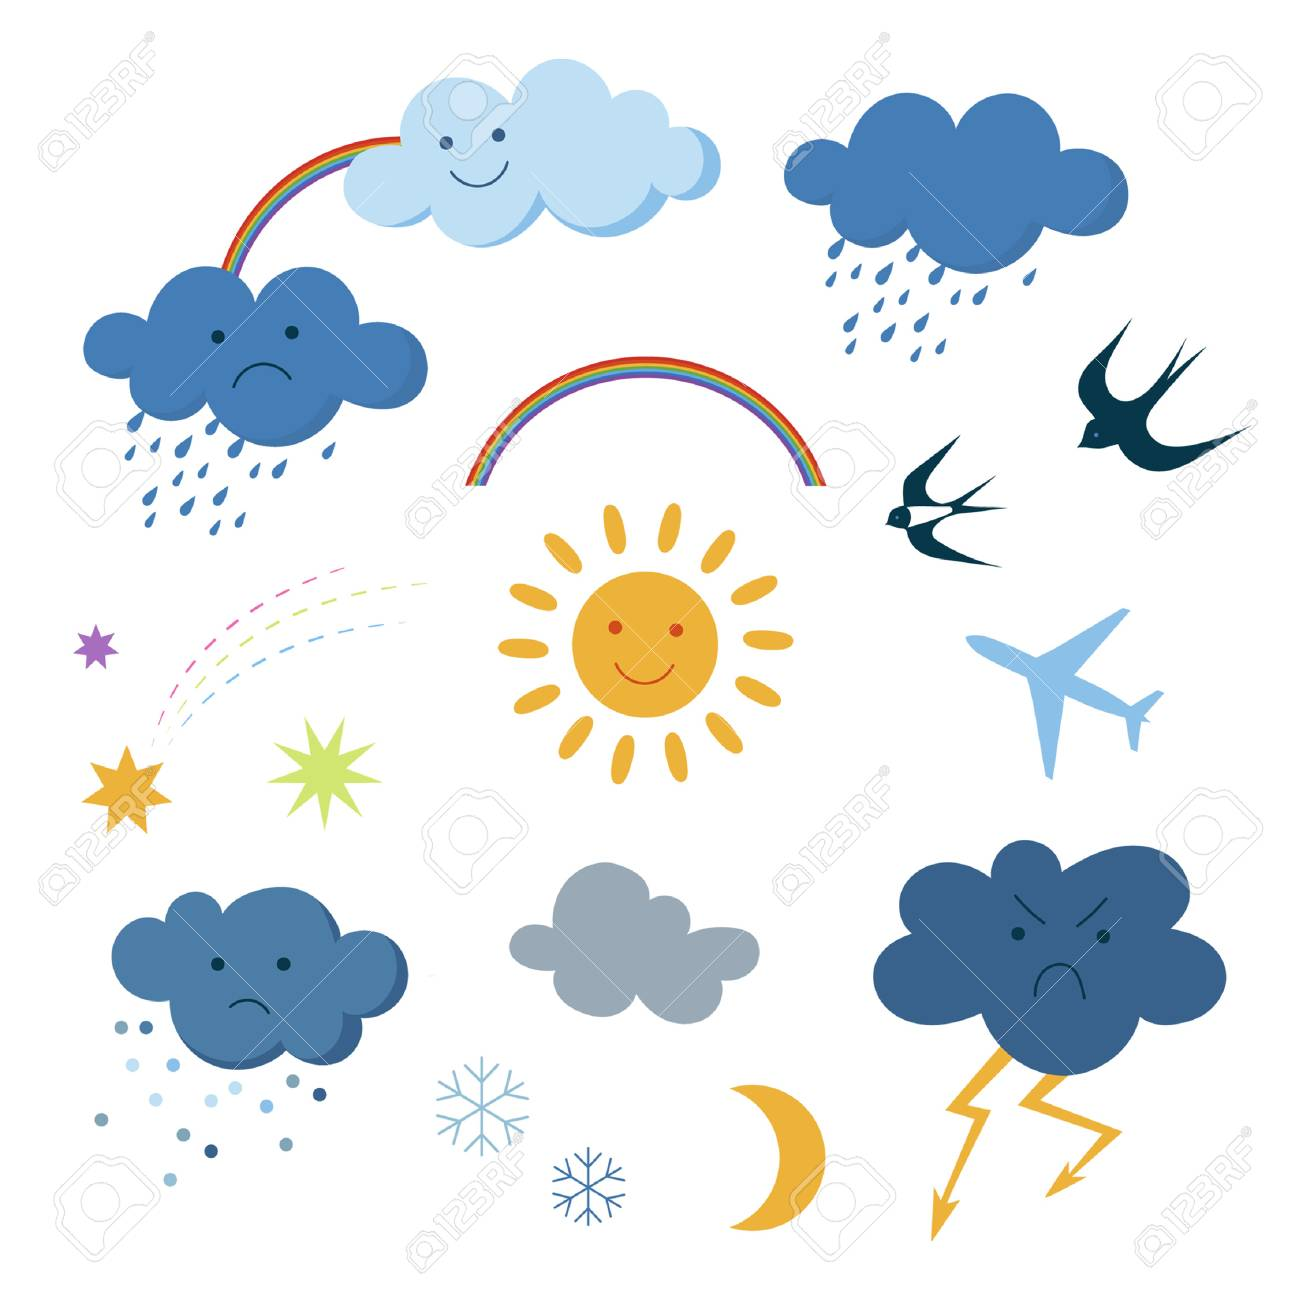 Cute cartoon sky objects weather symbols set clipart.